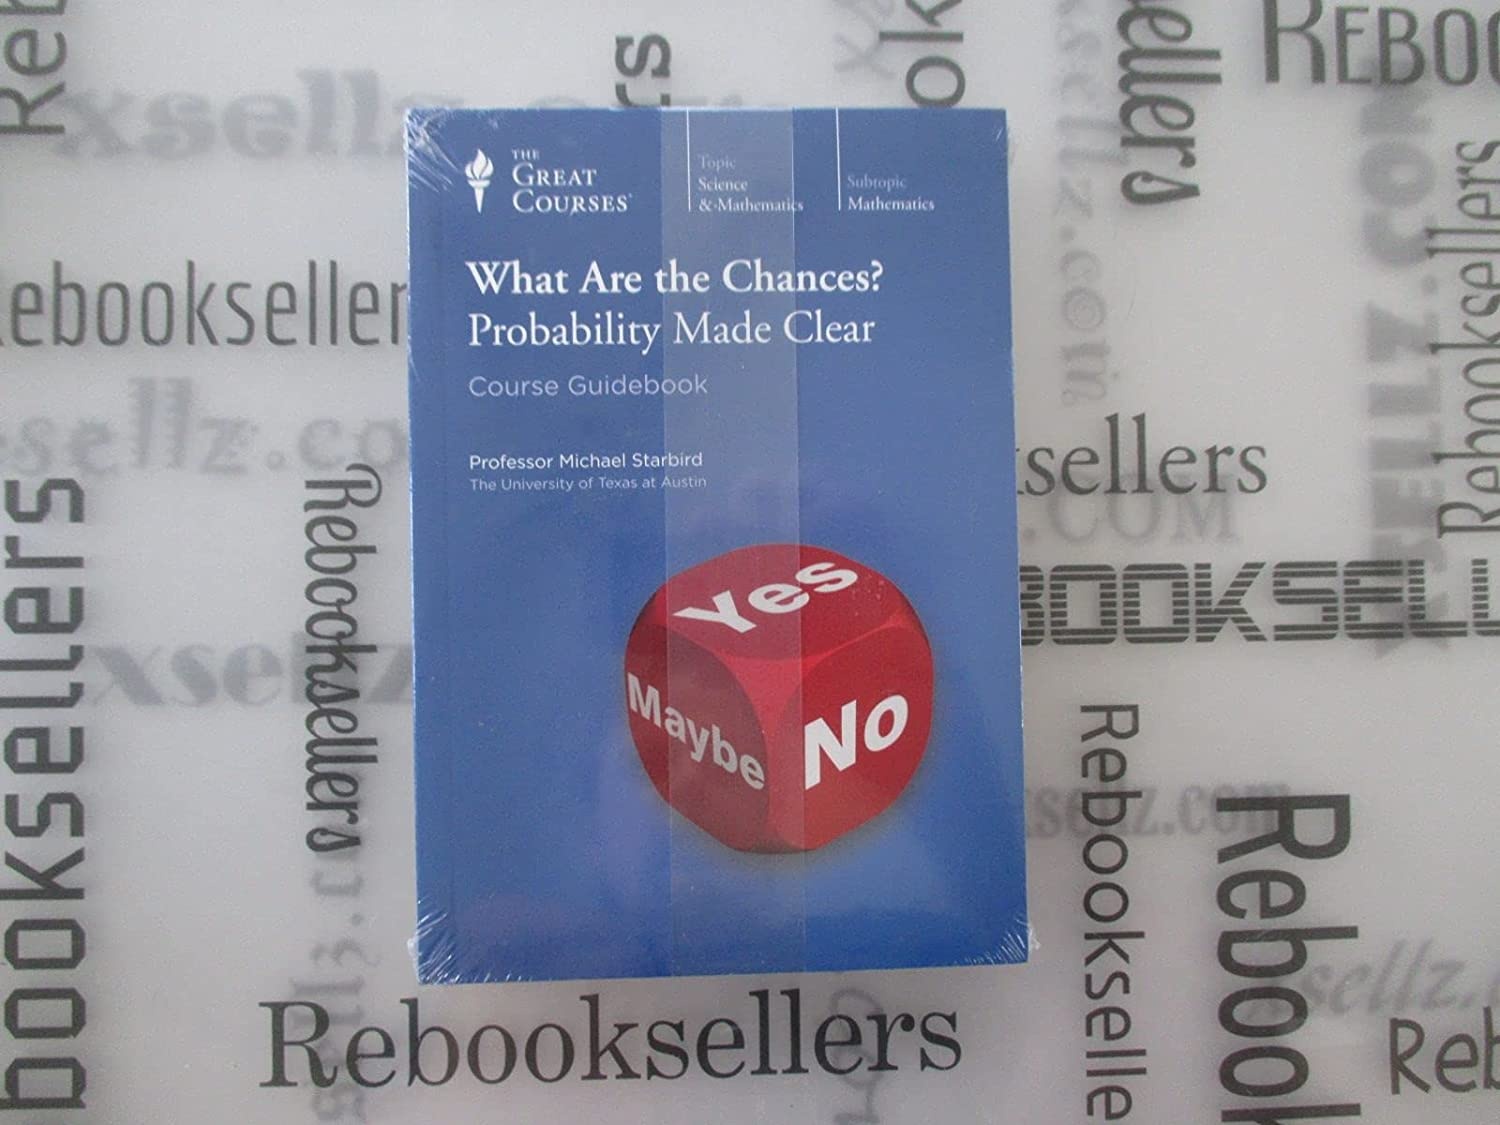 What Outstanding Are Super special price the Chances? Probability Clear Made